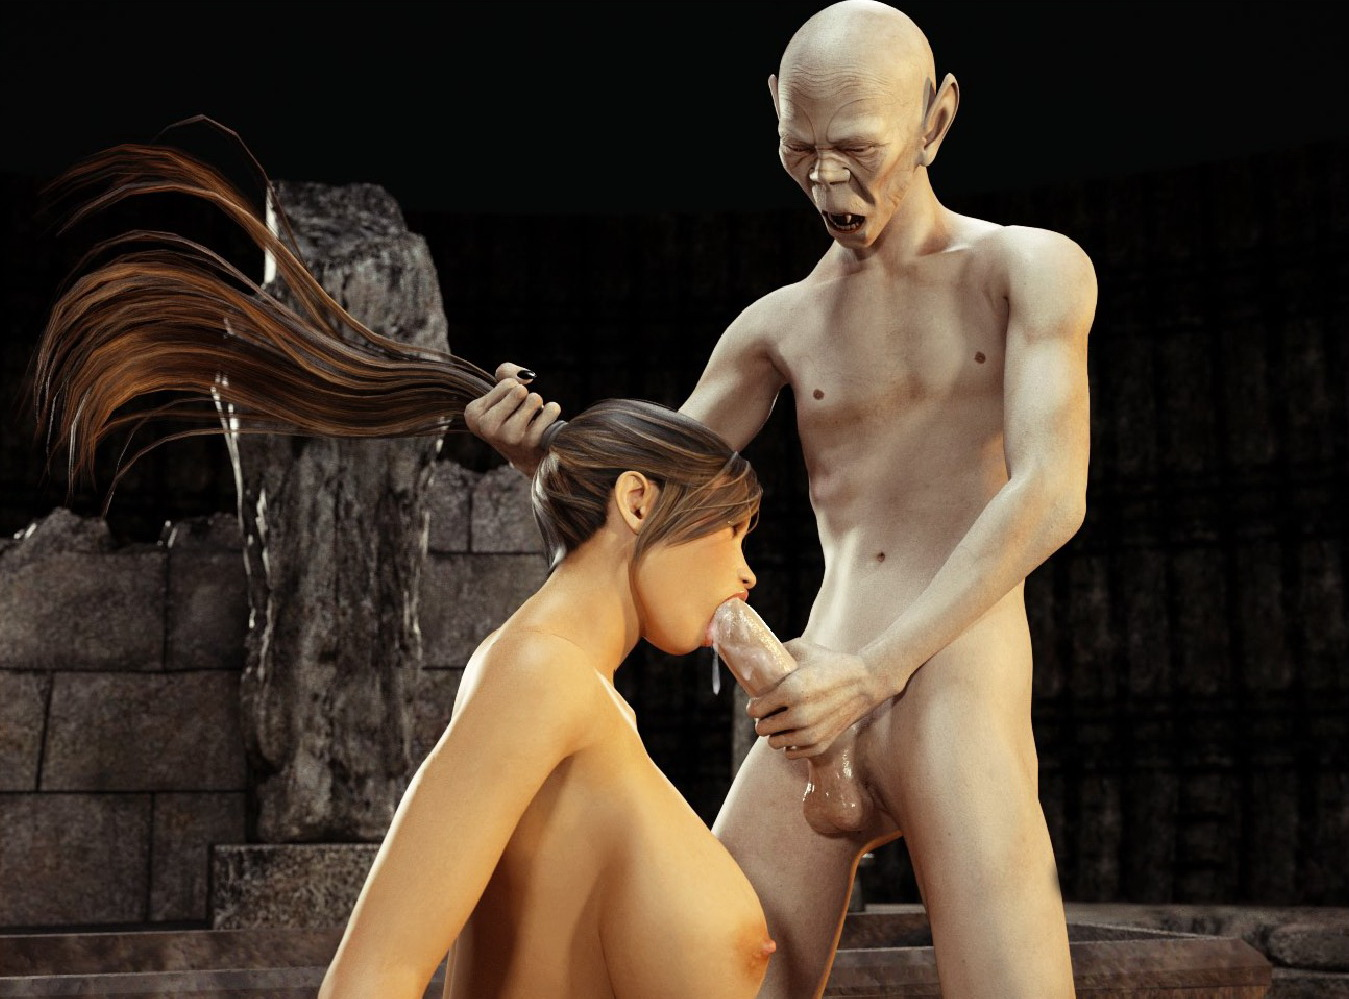 Kinky goblin with hot boobs pic hardcore videos